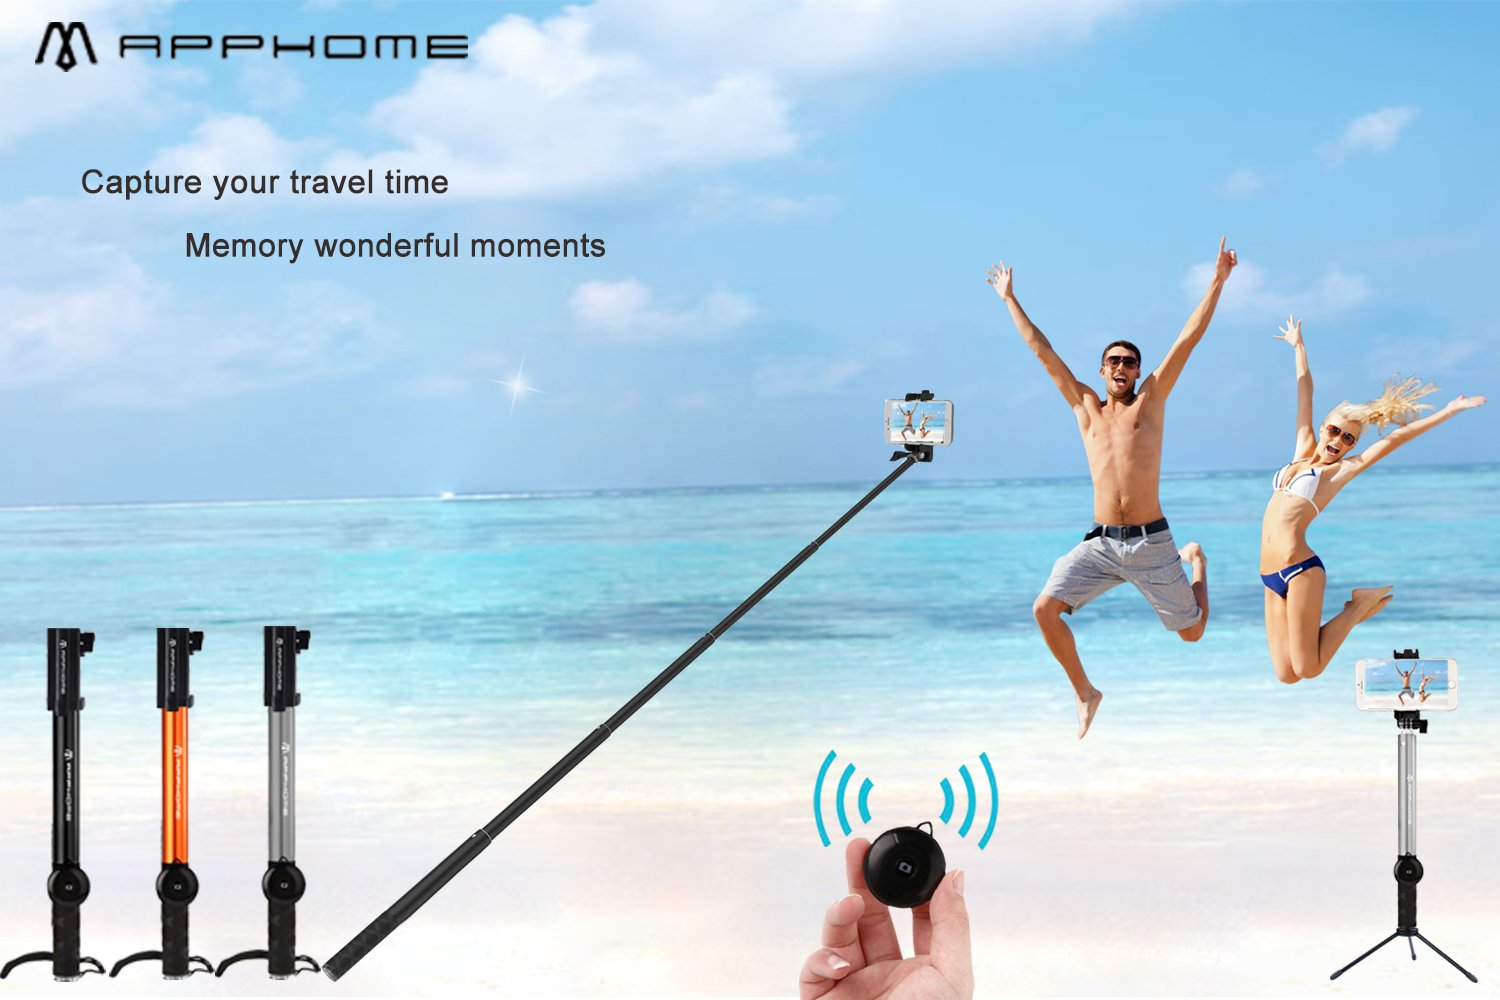 Bluetooth Selfie Stick with Tripod, APPHOME Aluminum Extendable Monopod with Wireless Remote Shutter Adjustable Phone Holder for iPhone 7 Se 6s 6 Plus Samsung Galaxy S6 Note 5 4 Android, Orange